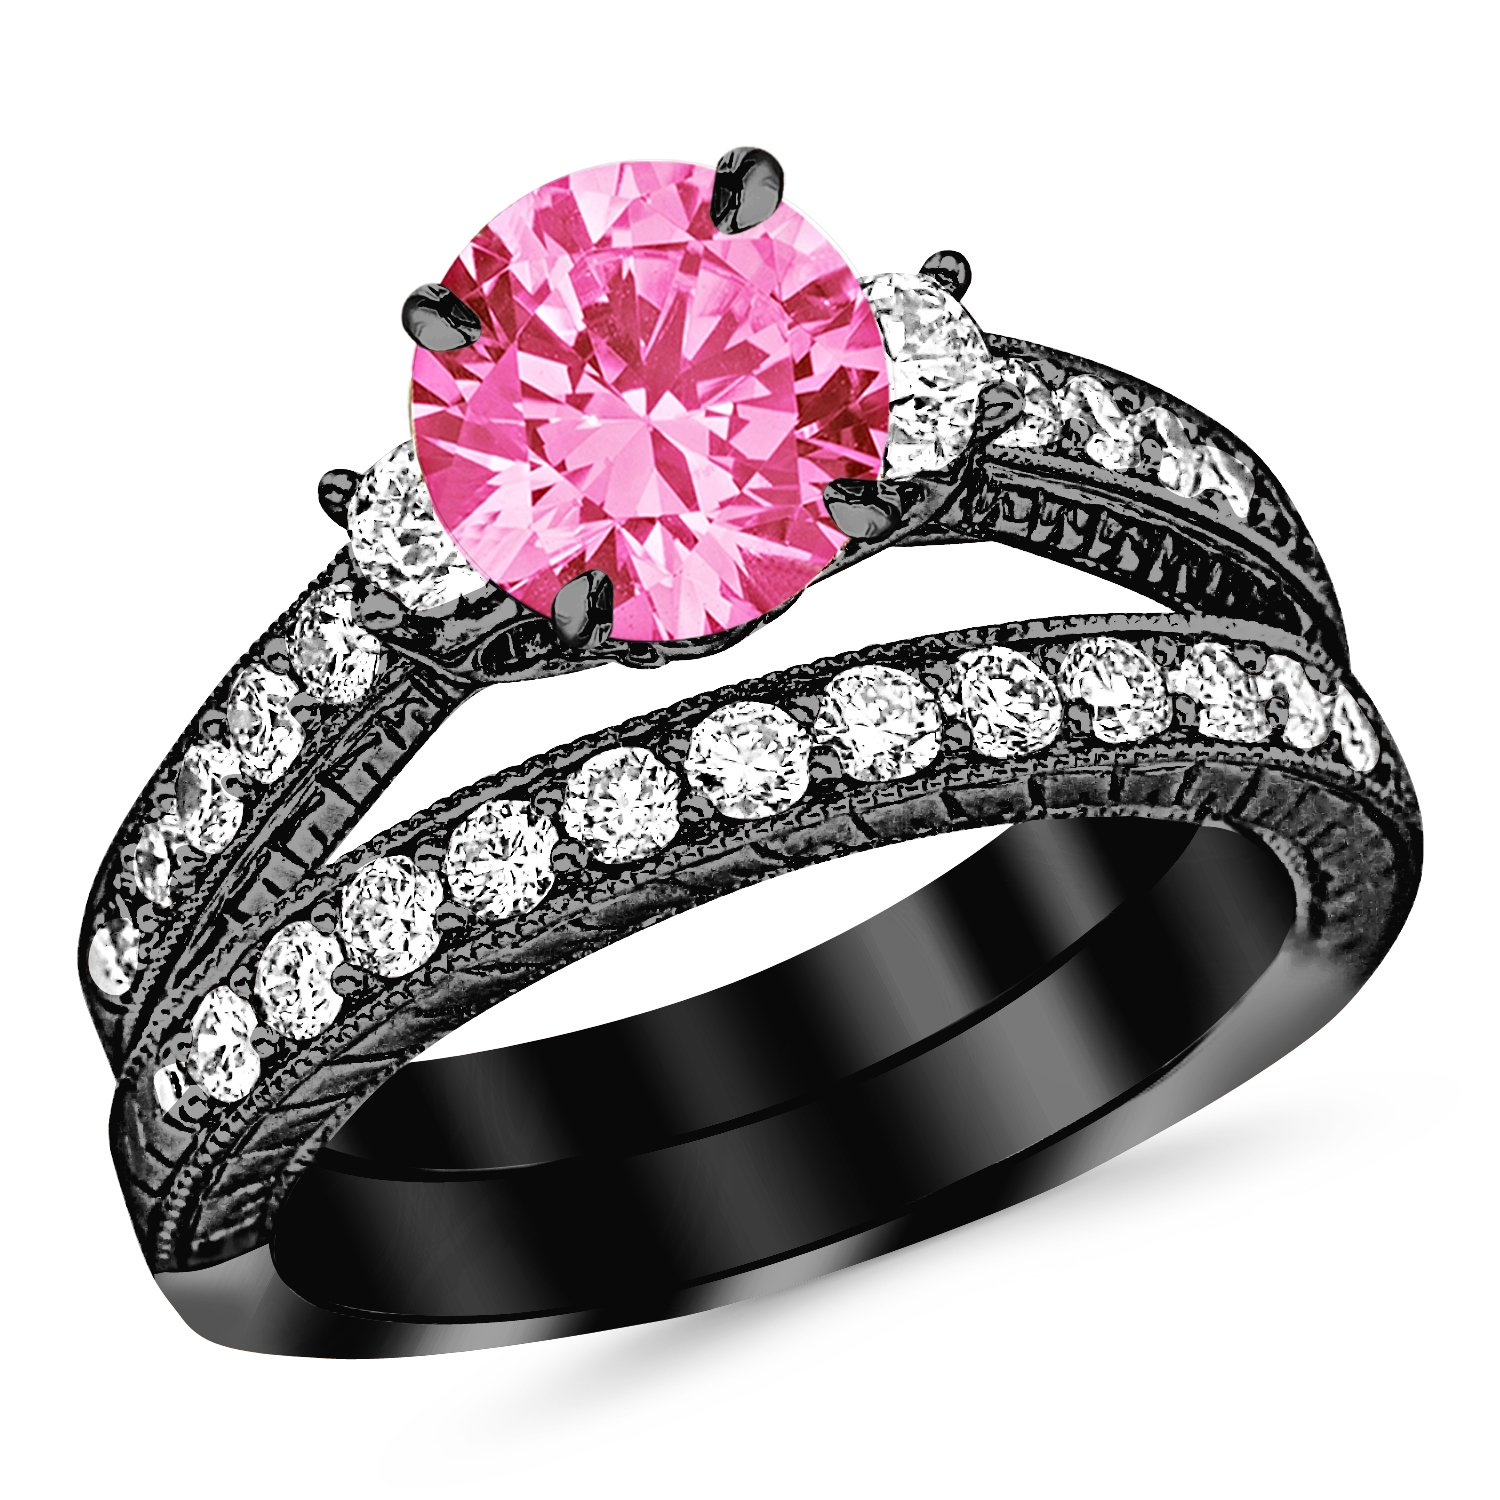 1.78 Carat 14K Black Gold Three Stone Vintage With Milgrain & Filigree Bridal Set with Wedding Band & Diamond Engagement Ring with a 0.75 Carat Natural Pink Sapphire Center (Heirloom Quality)